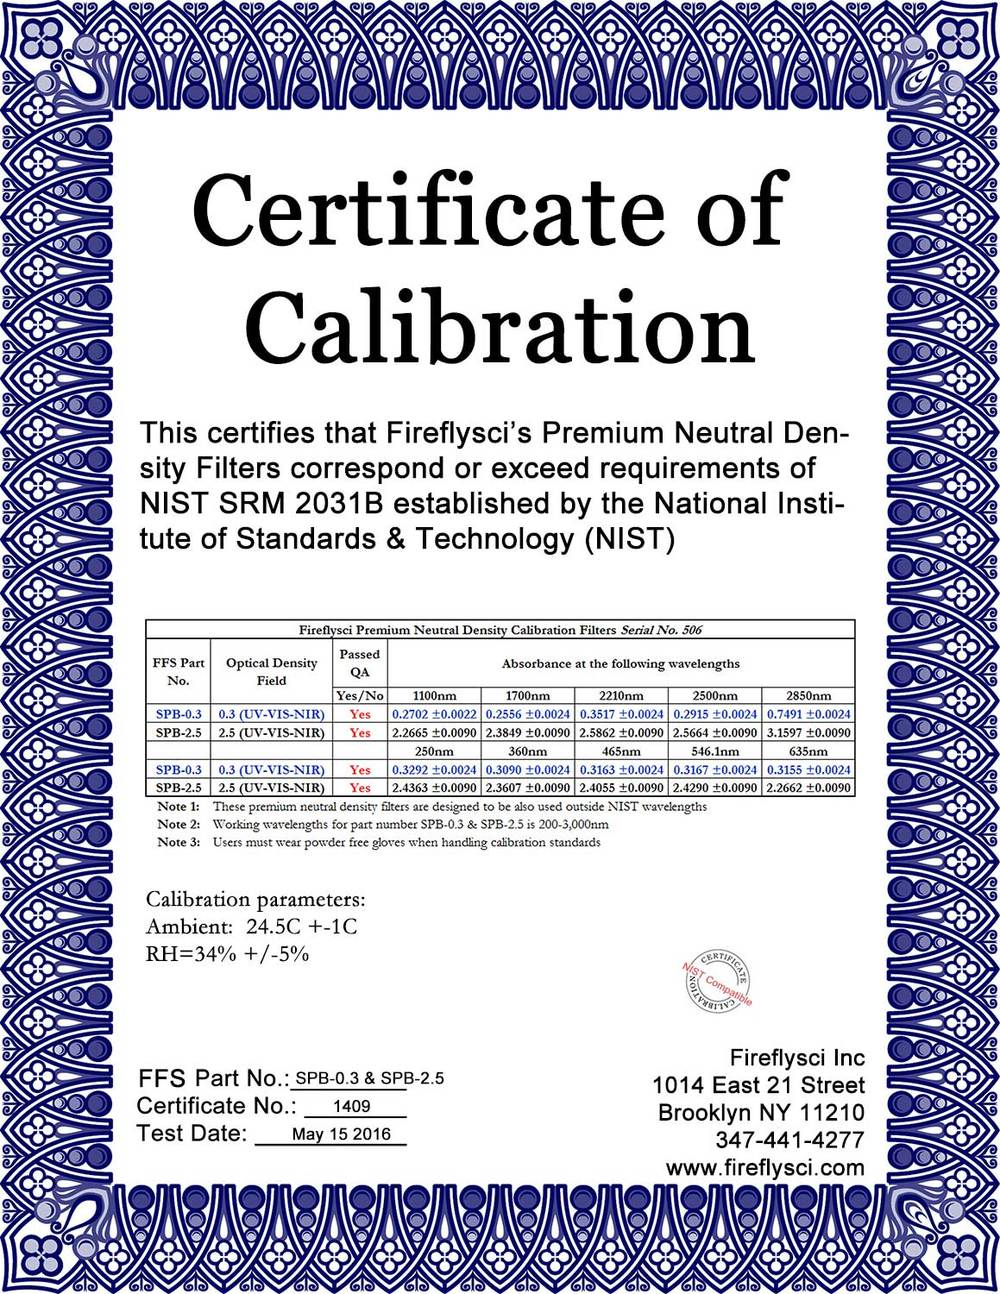 Sample Superband Certificate of Calibration